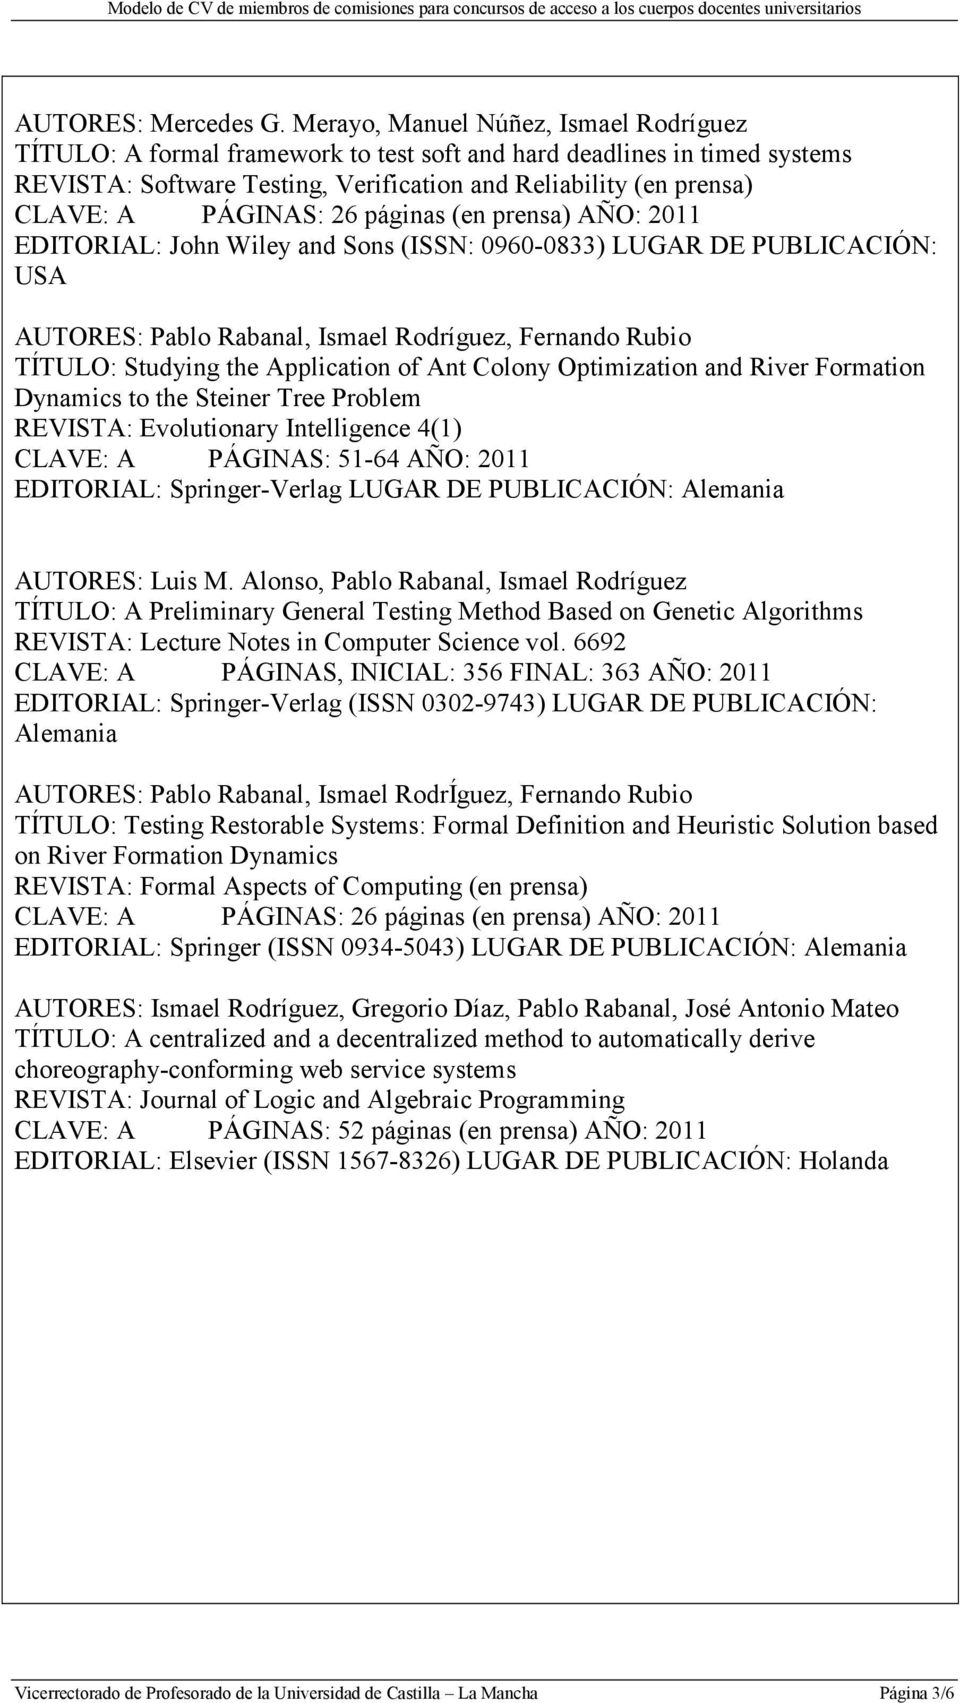 PÁGINAS: 26 páginas (en prensa) AÑO: 2011 EDITORIAL: John Wiley and Sons (ISSN: 0960-0833) LUGAR DE PUBLICACIÓN: USA TÍTULO: Studying the Application of Ant Colony Optimization and River Formation